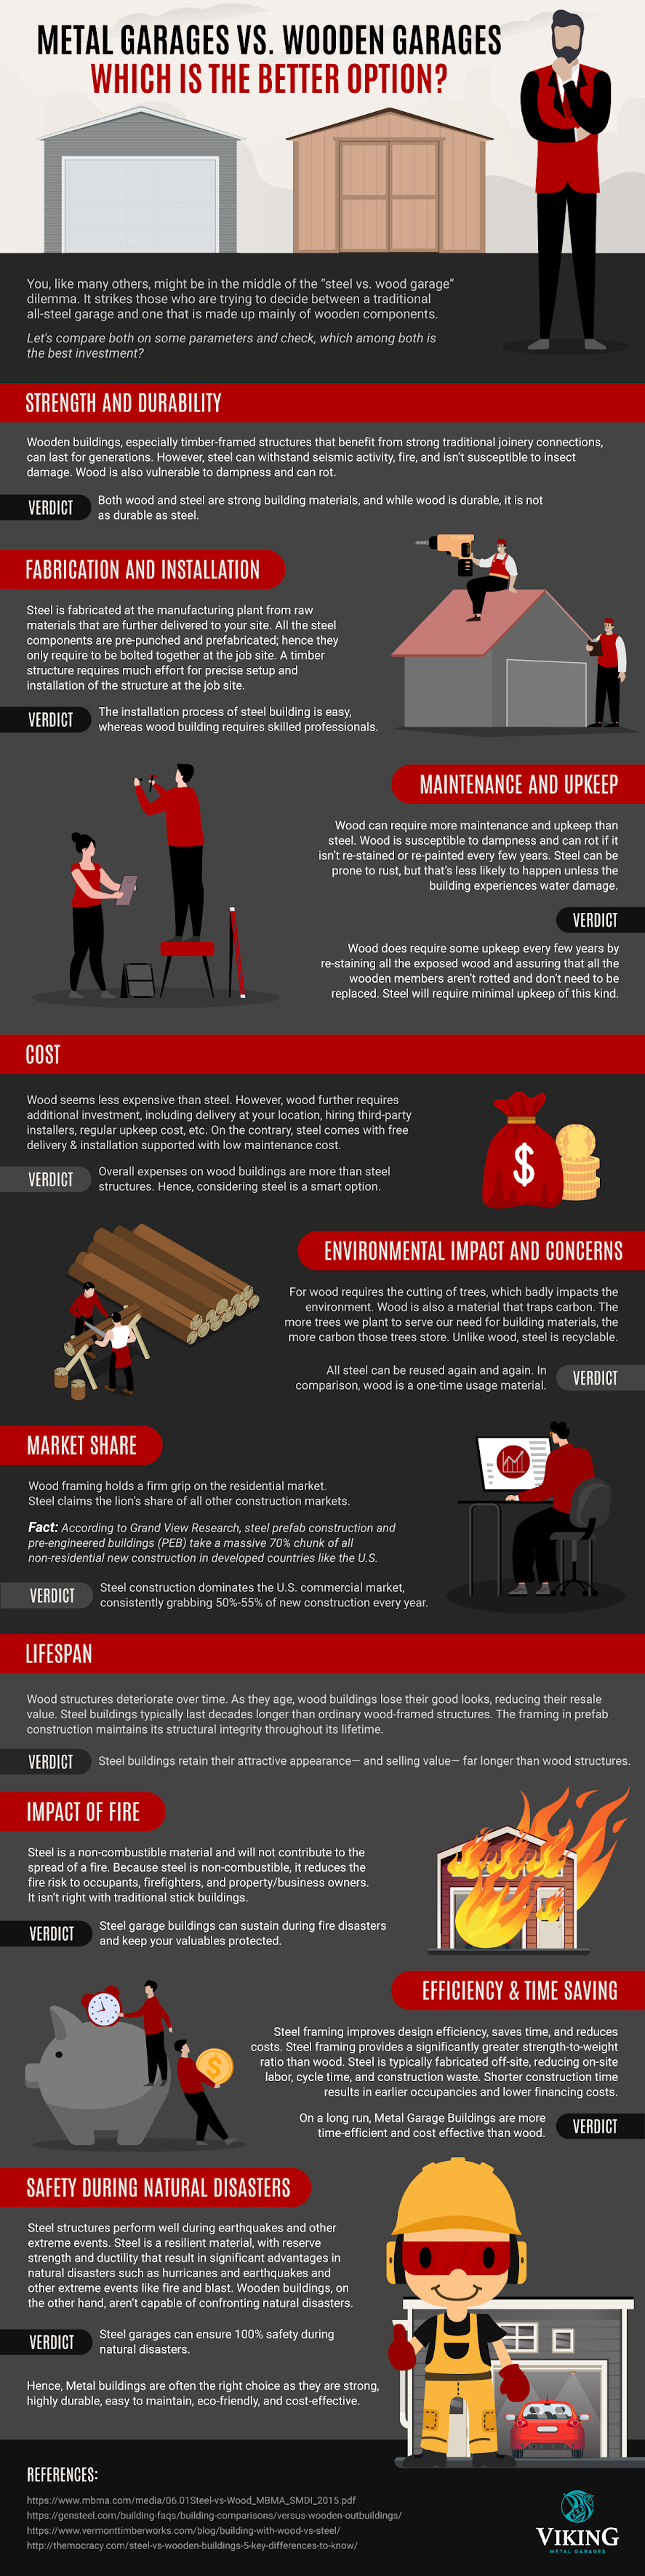 Metal Garages vs. Wooden Garages – Which is The Better Option?  #infographic #Metal garages Vs Wooden Garages #Metal Buildings Vs Wooden Buildings #Metal Sheds Vs Timber Sheds #Steel garages Vs Lumber Sheds #Steel sheds Vs Wood sheds